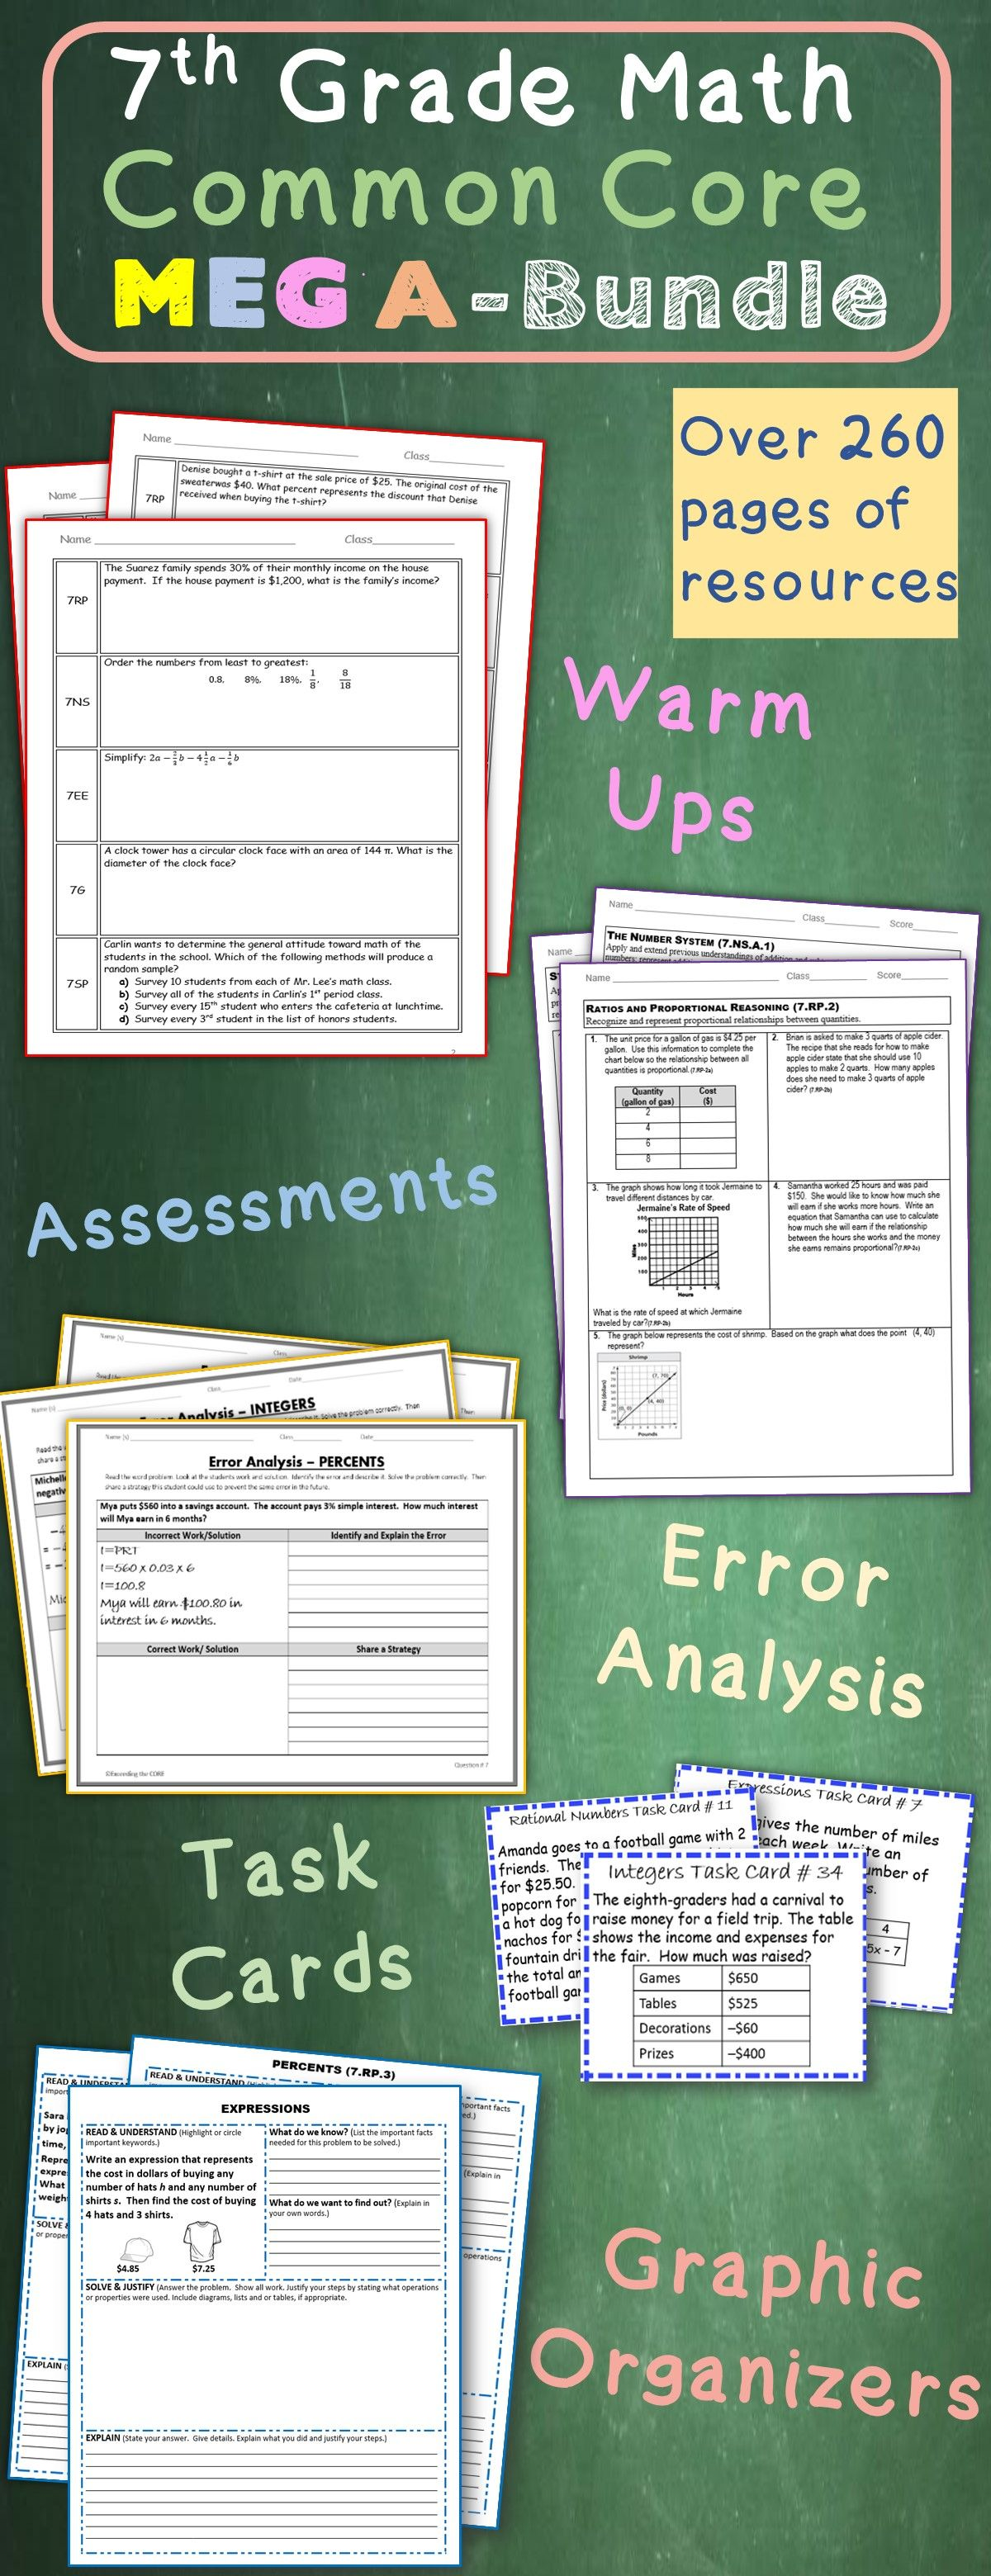 7th Grade Math Common Core Assessments Warm Ups Task